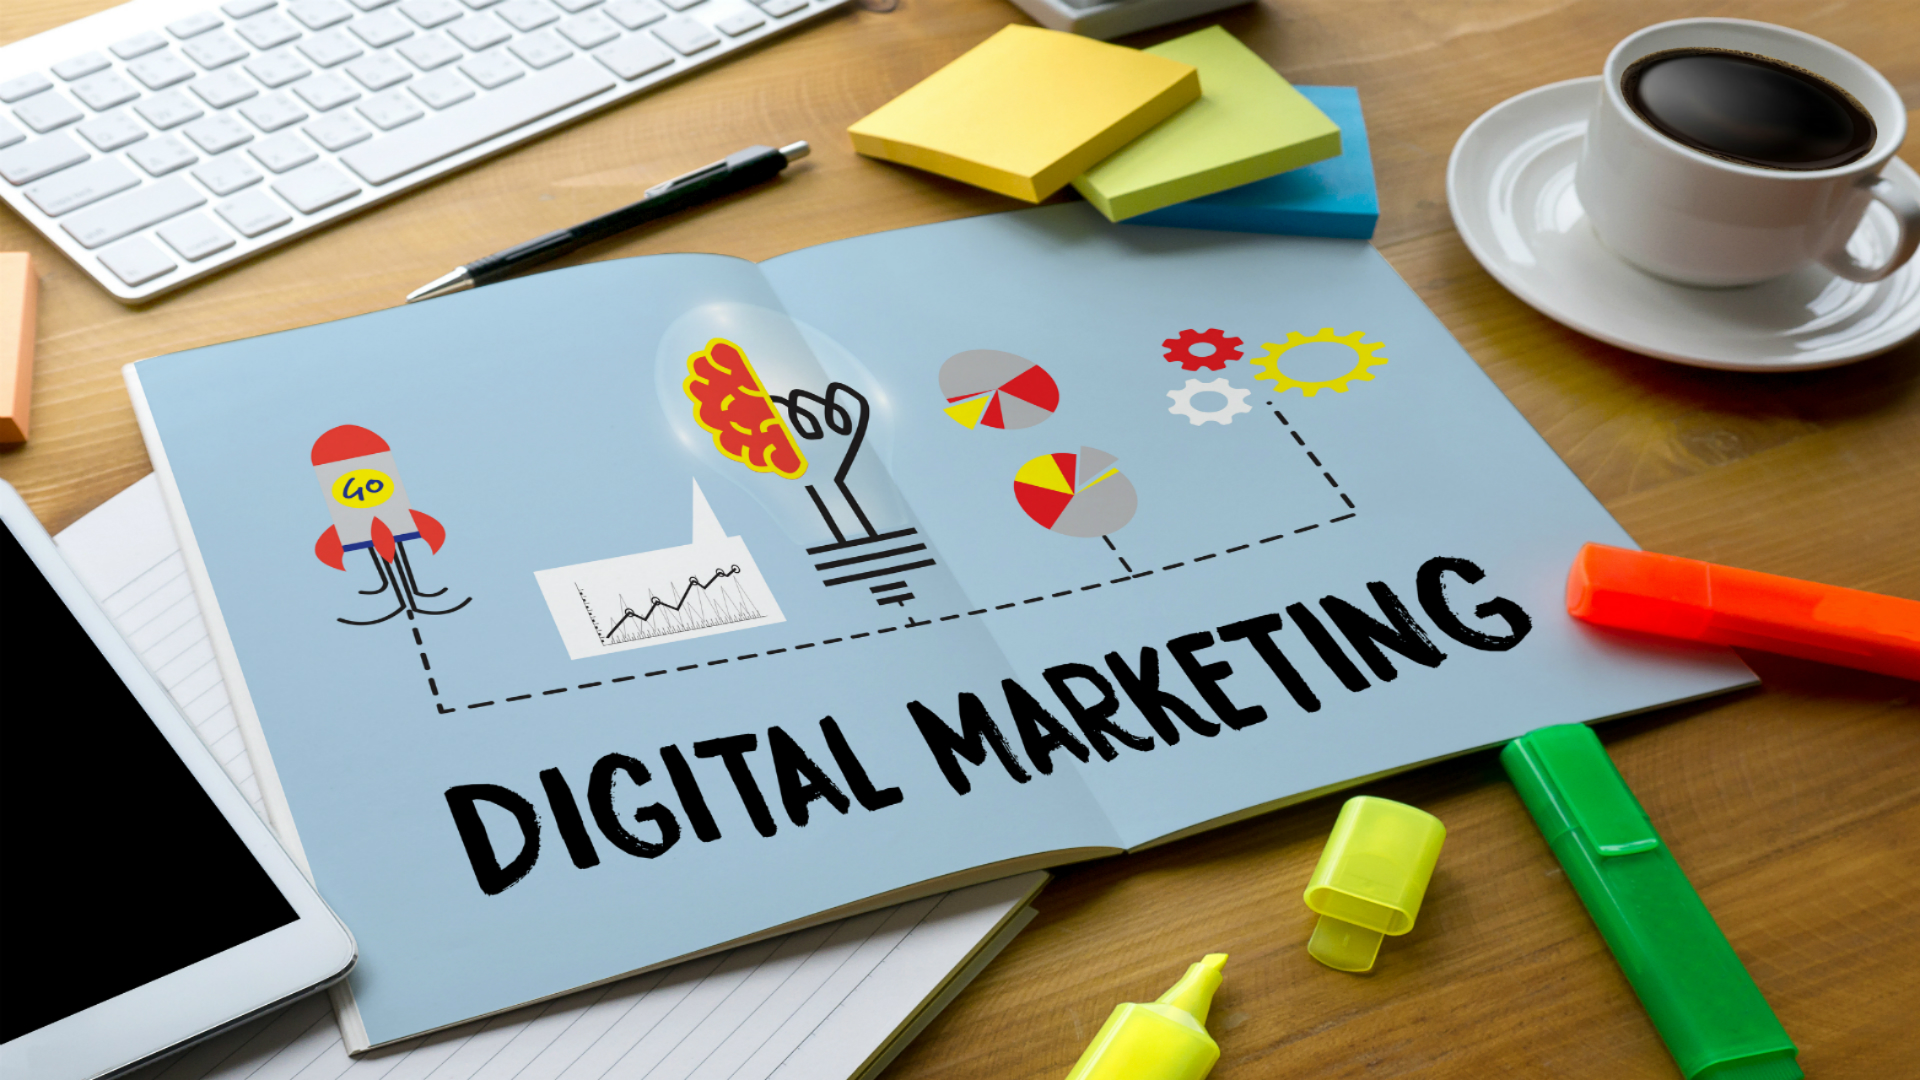 Digital Marketing: The Ultimate Way to Boost Your Business